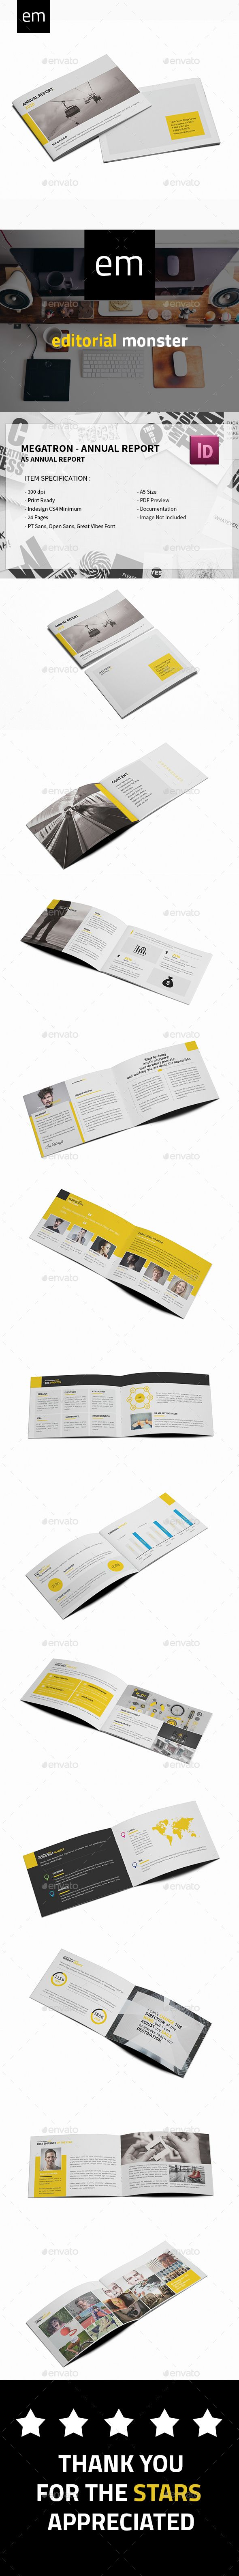 Megatron - A5 Annual Report - Corporate Brochures Download here : https://graphicriver.net/item/megatron-a5-annual-report/19880858?s_rank=93&ref=Al-fatih #brochure #brochure design #brochure template  #design #premium design #proposal #report #annual report #business brochure